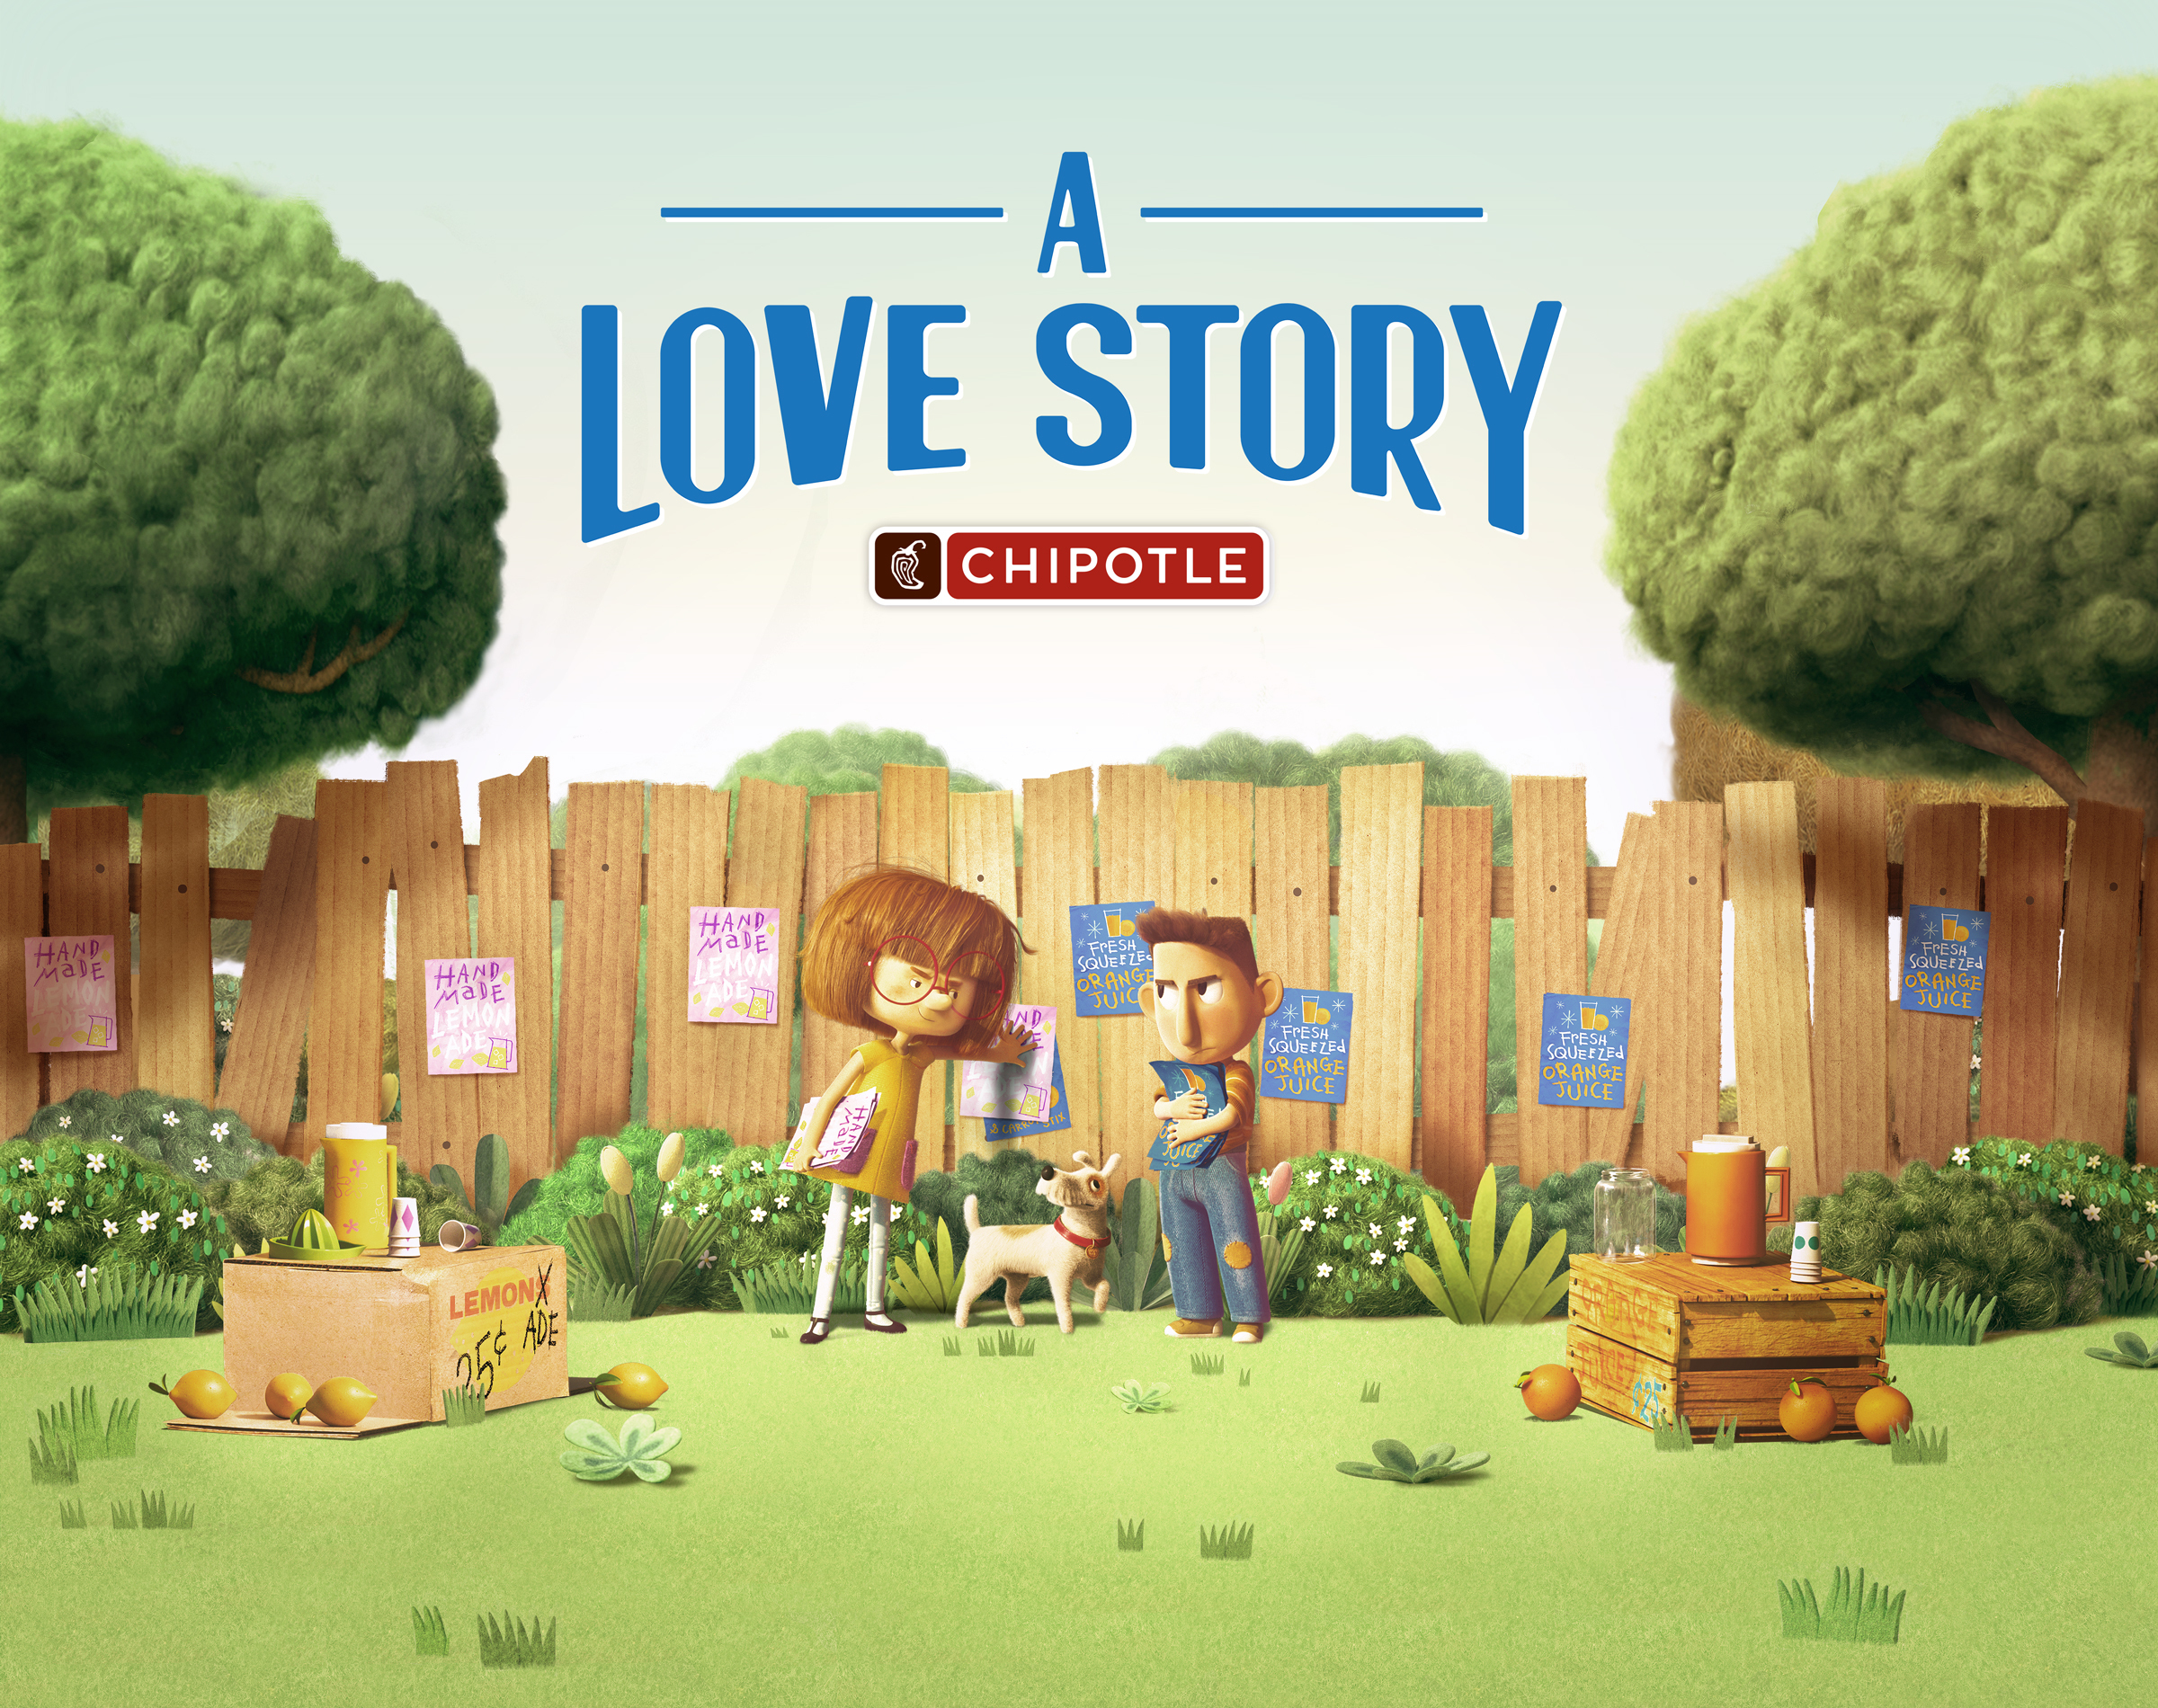 Chipotle Releases Short Film, 'A Love Story' | Business Wire